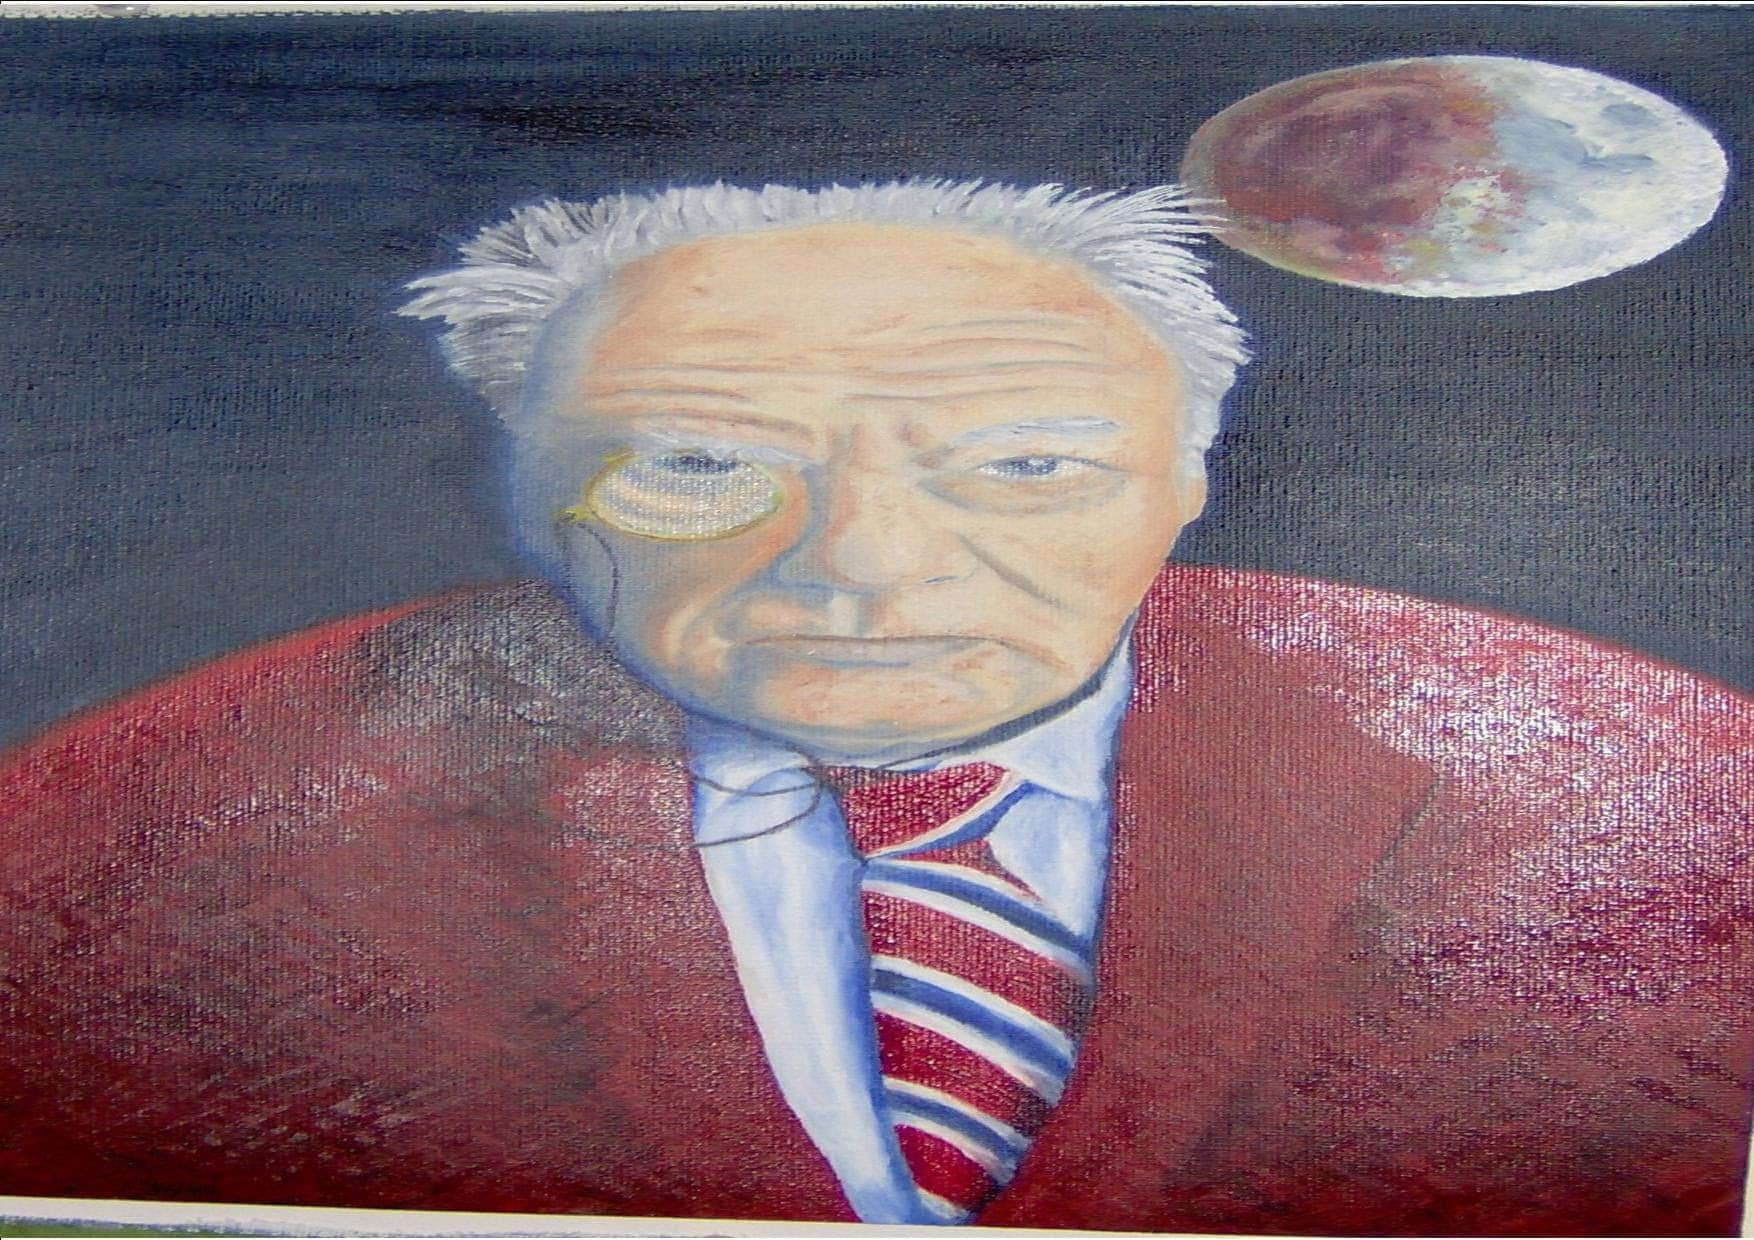 Tribute to Sir Patrick Moore who died today. 14